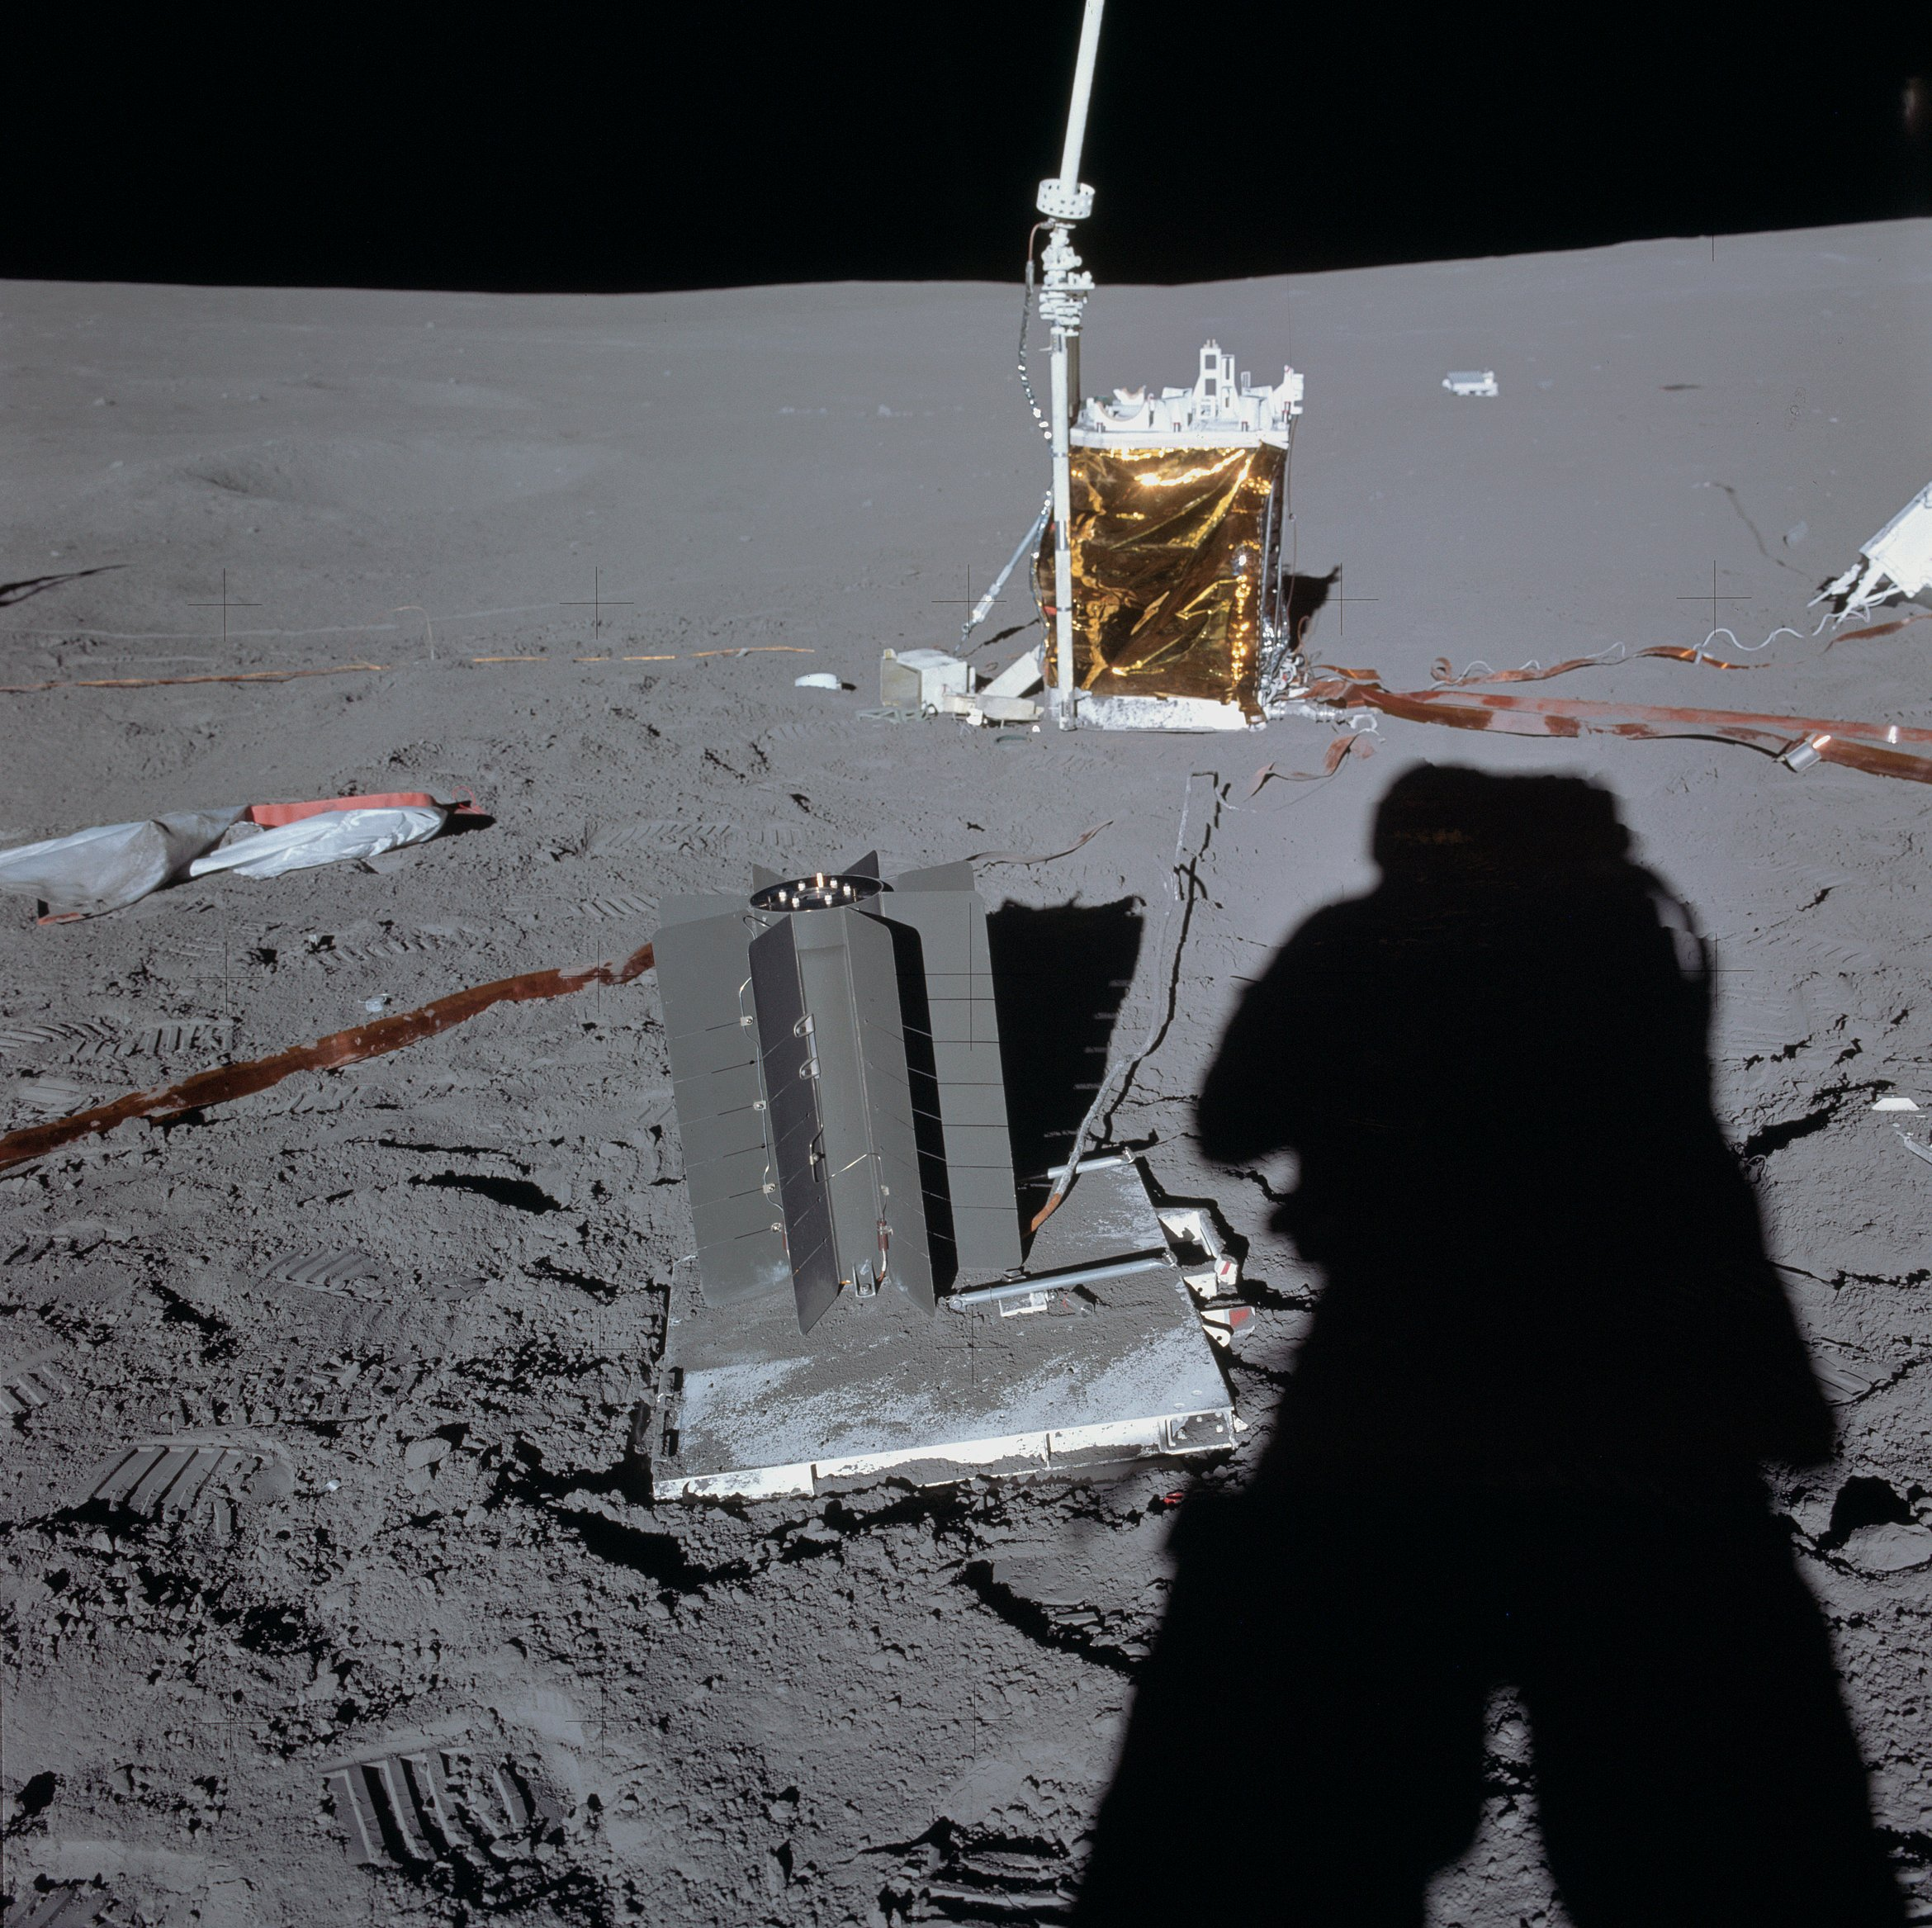 Nasa Apollos Lunar Dust Data Being Restored Surface Wiring Shadow Of Apollo 14 Astronaut Looms Over Footprints Packages Instruments And Across The